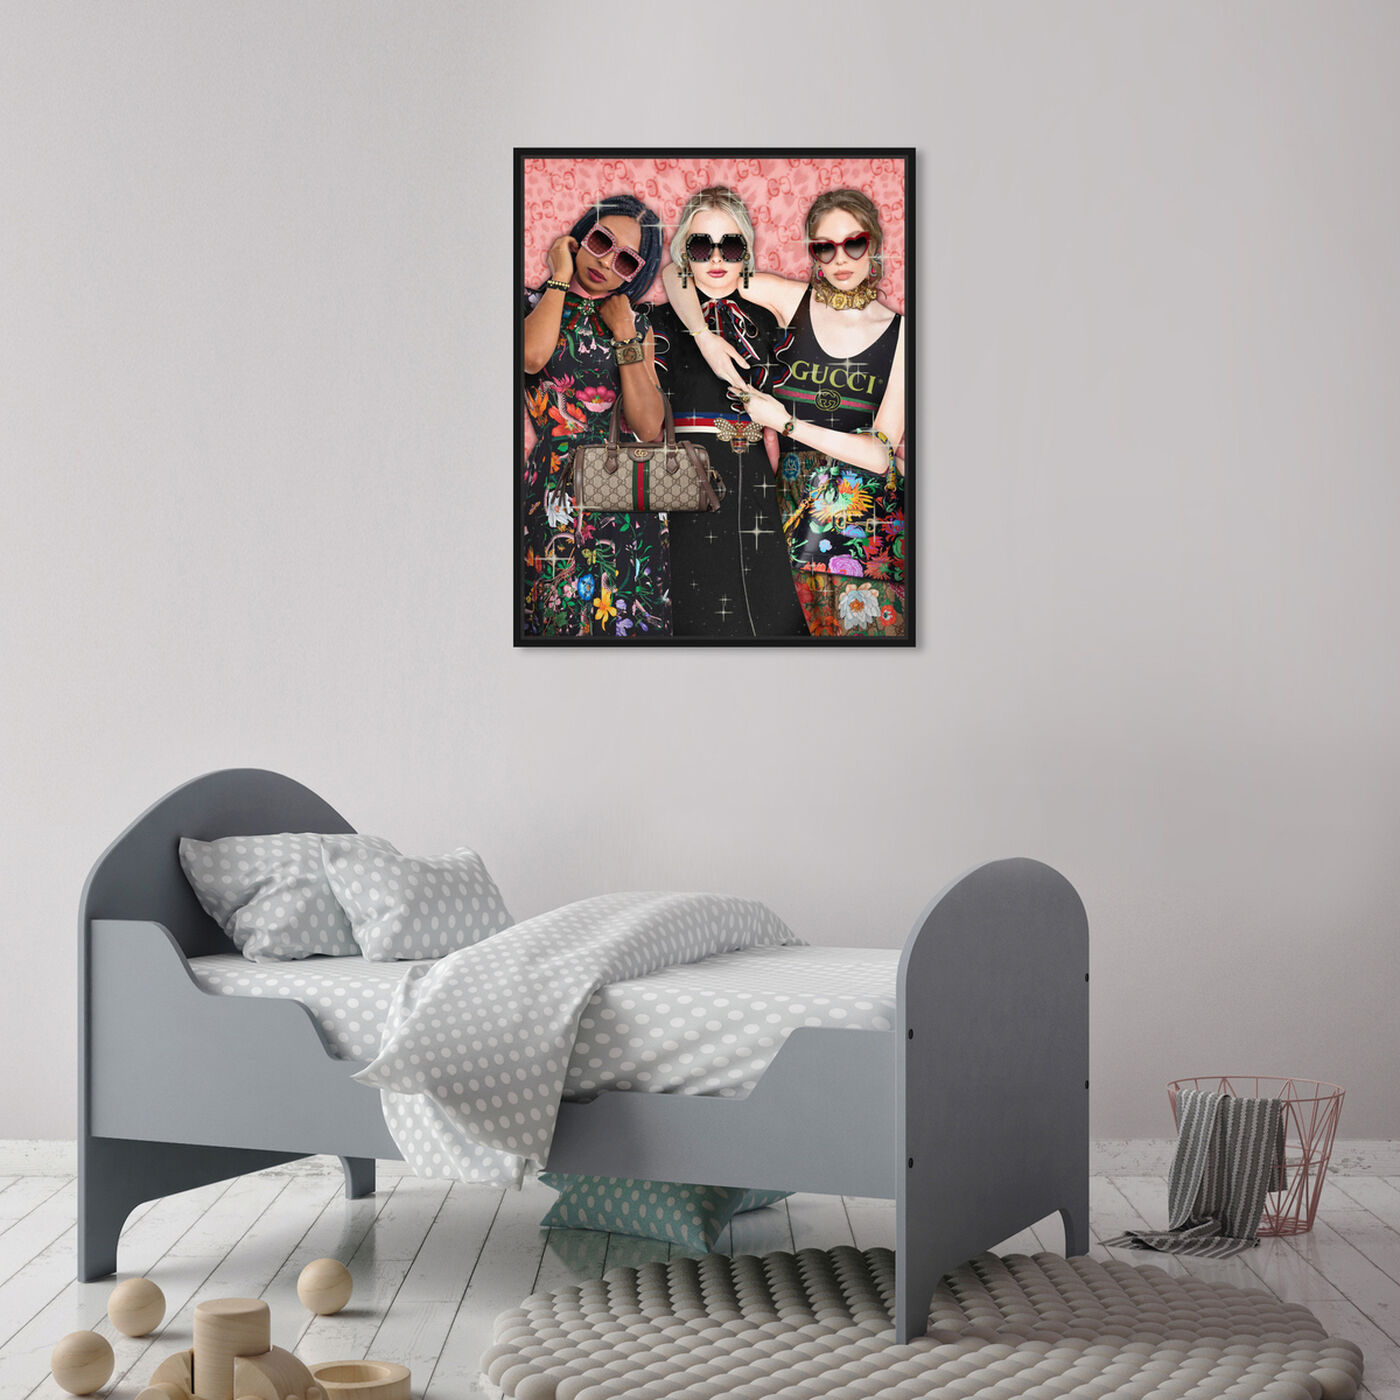 Hanging view of Colorful Trio featuring fashion and glam and runway art.